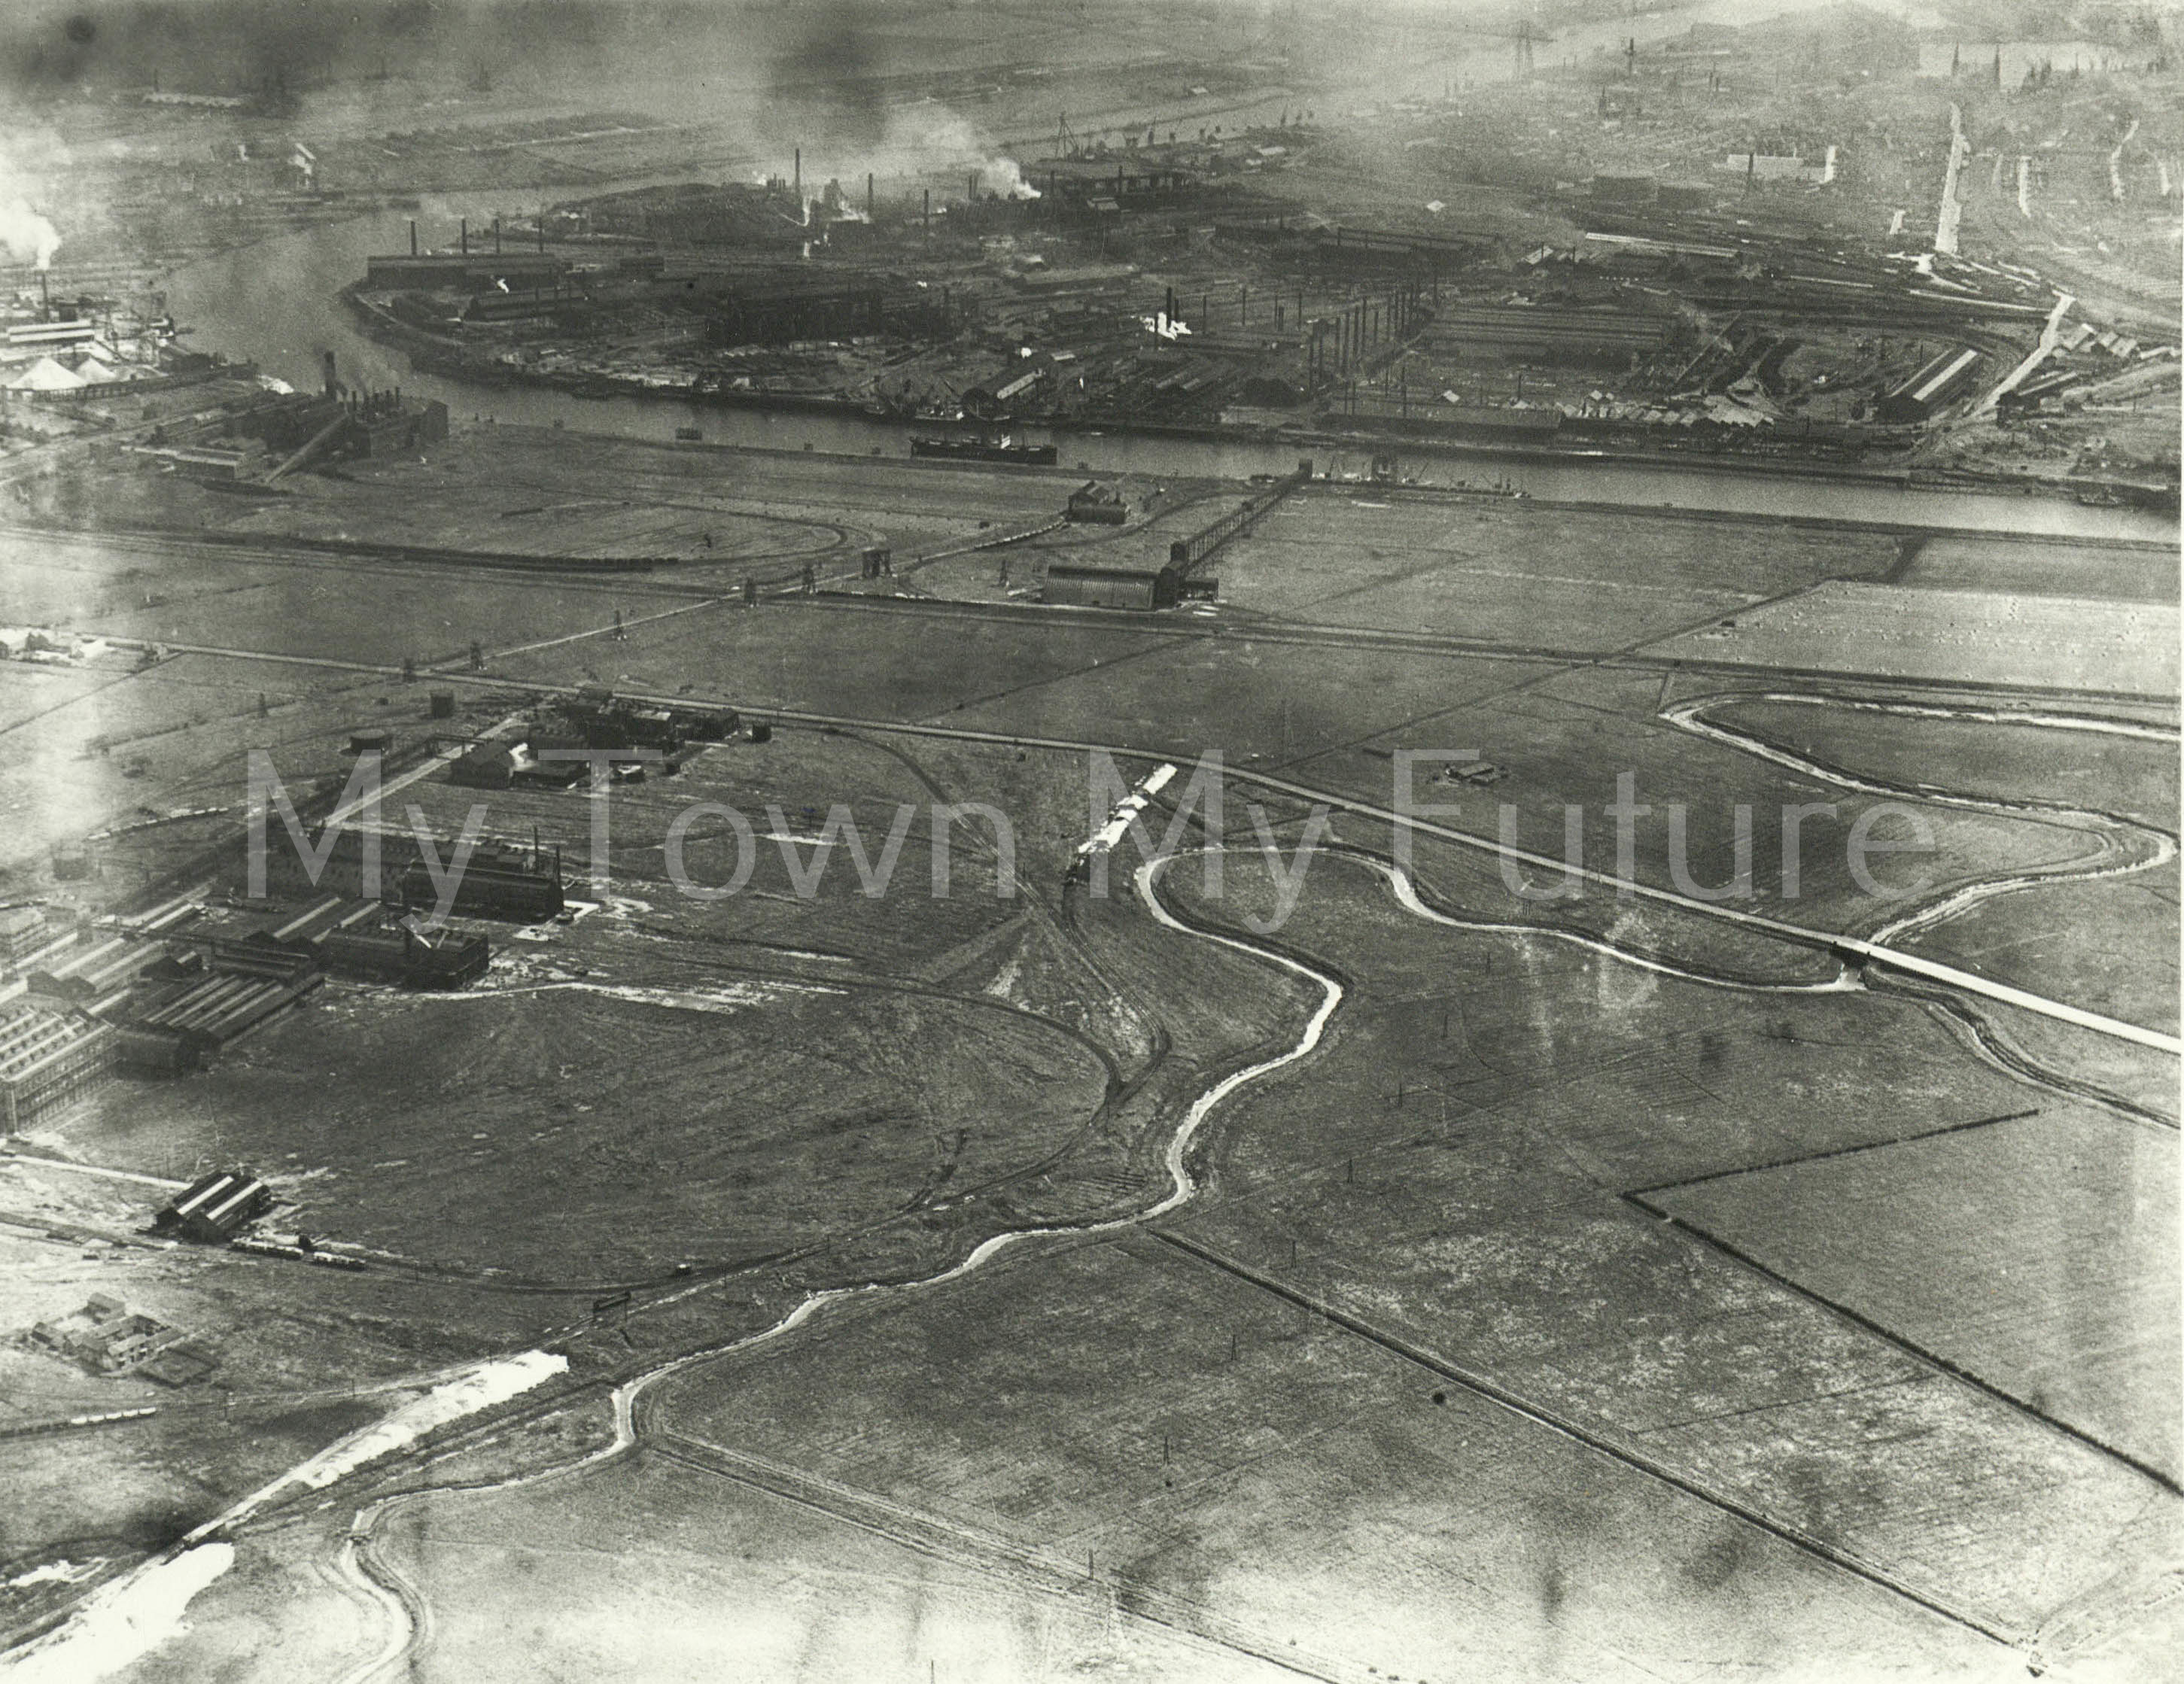 Middlesbrough River Tees (1950).